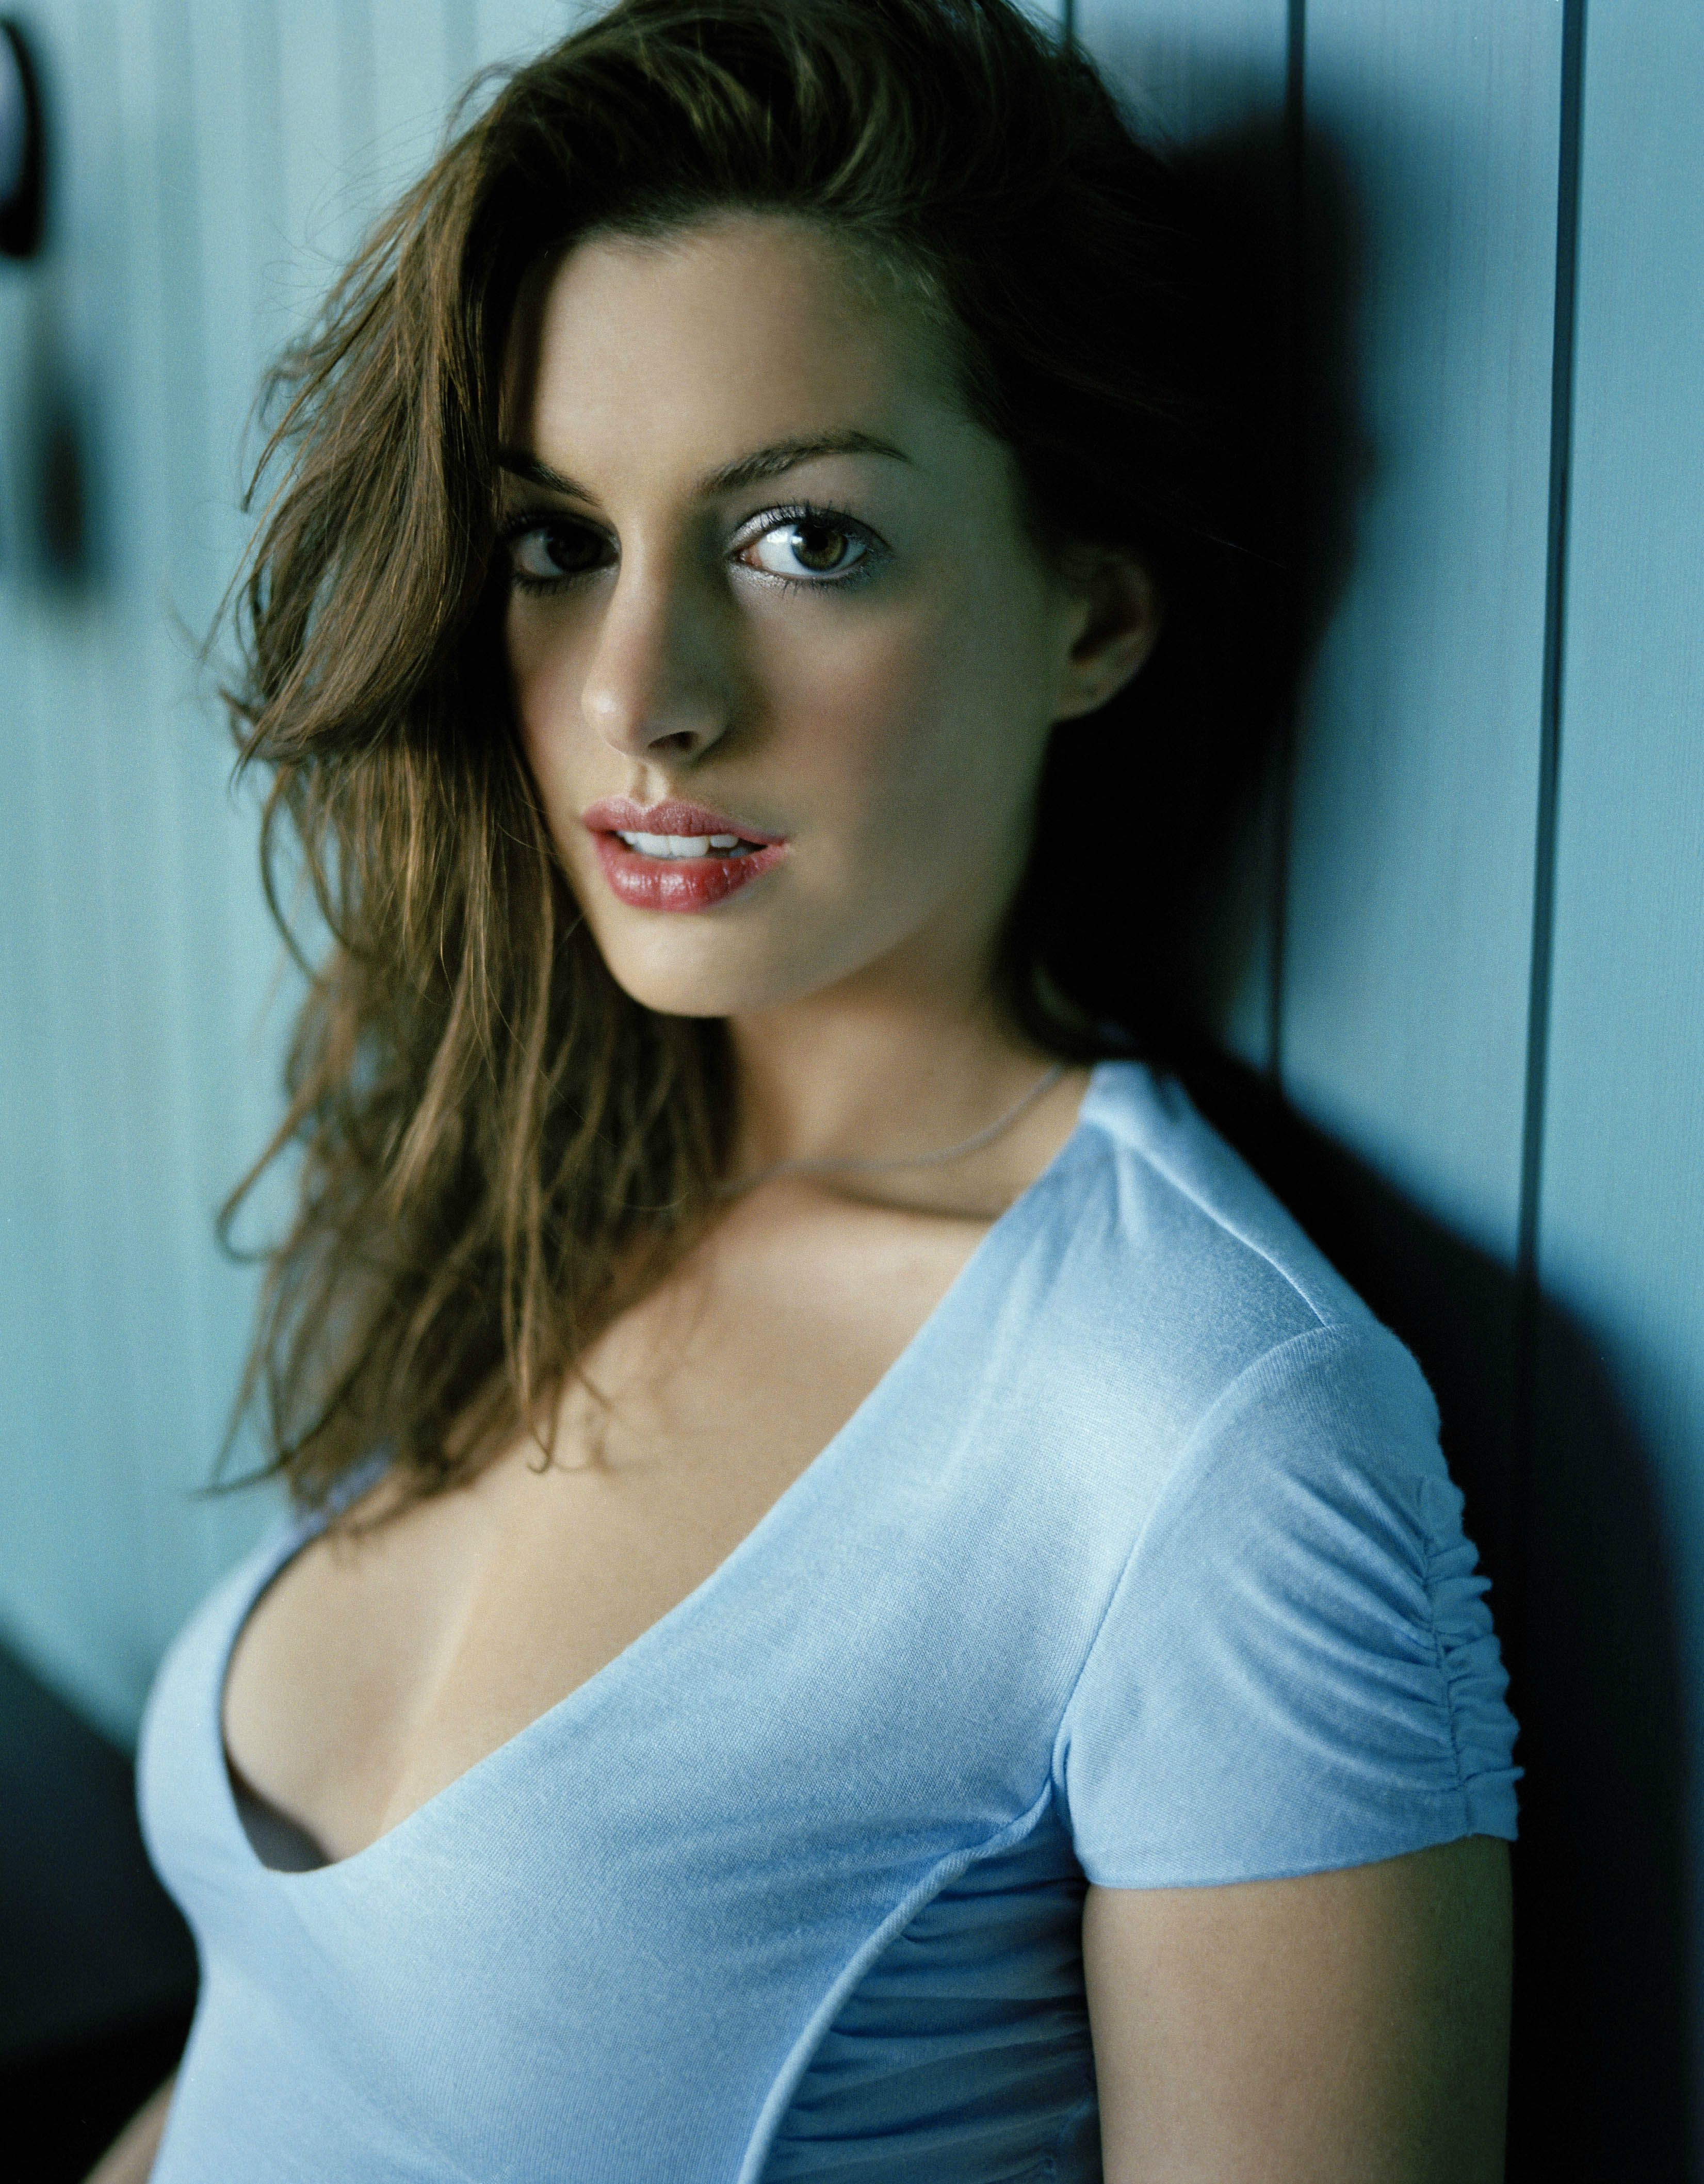 Anne Hathaway Wallpaper For Android